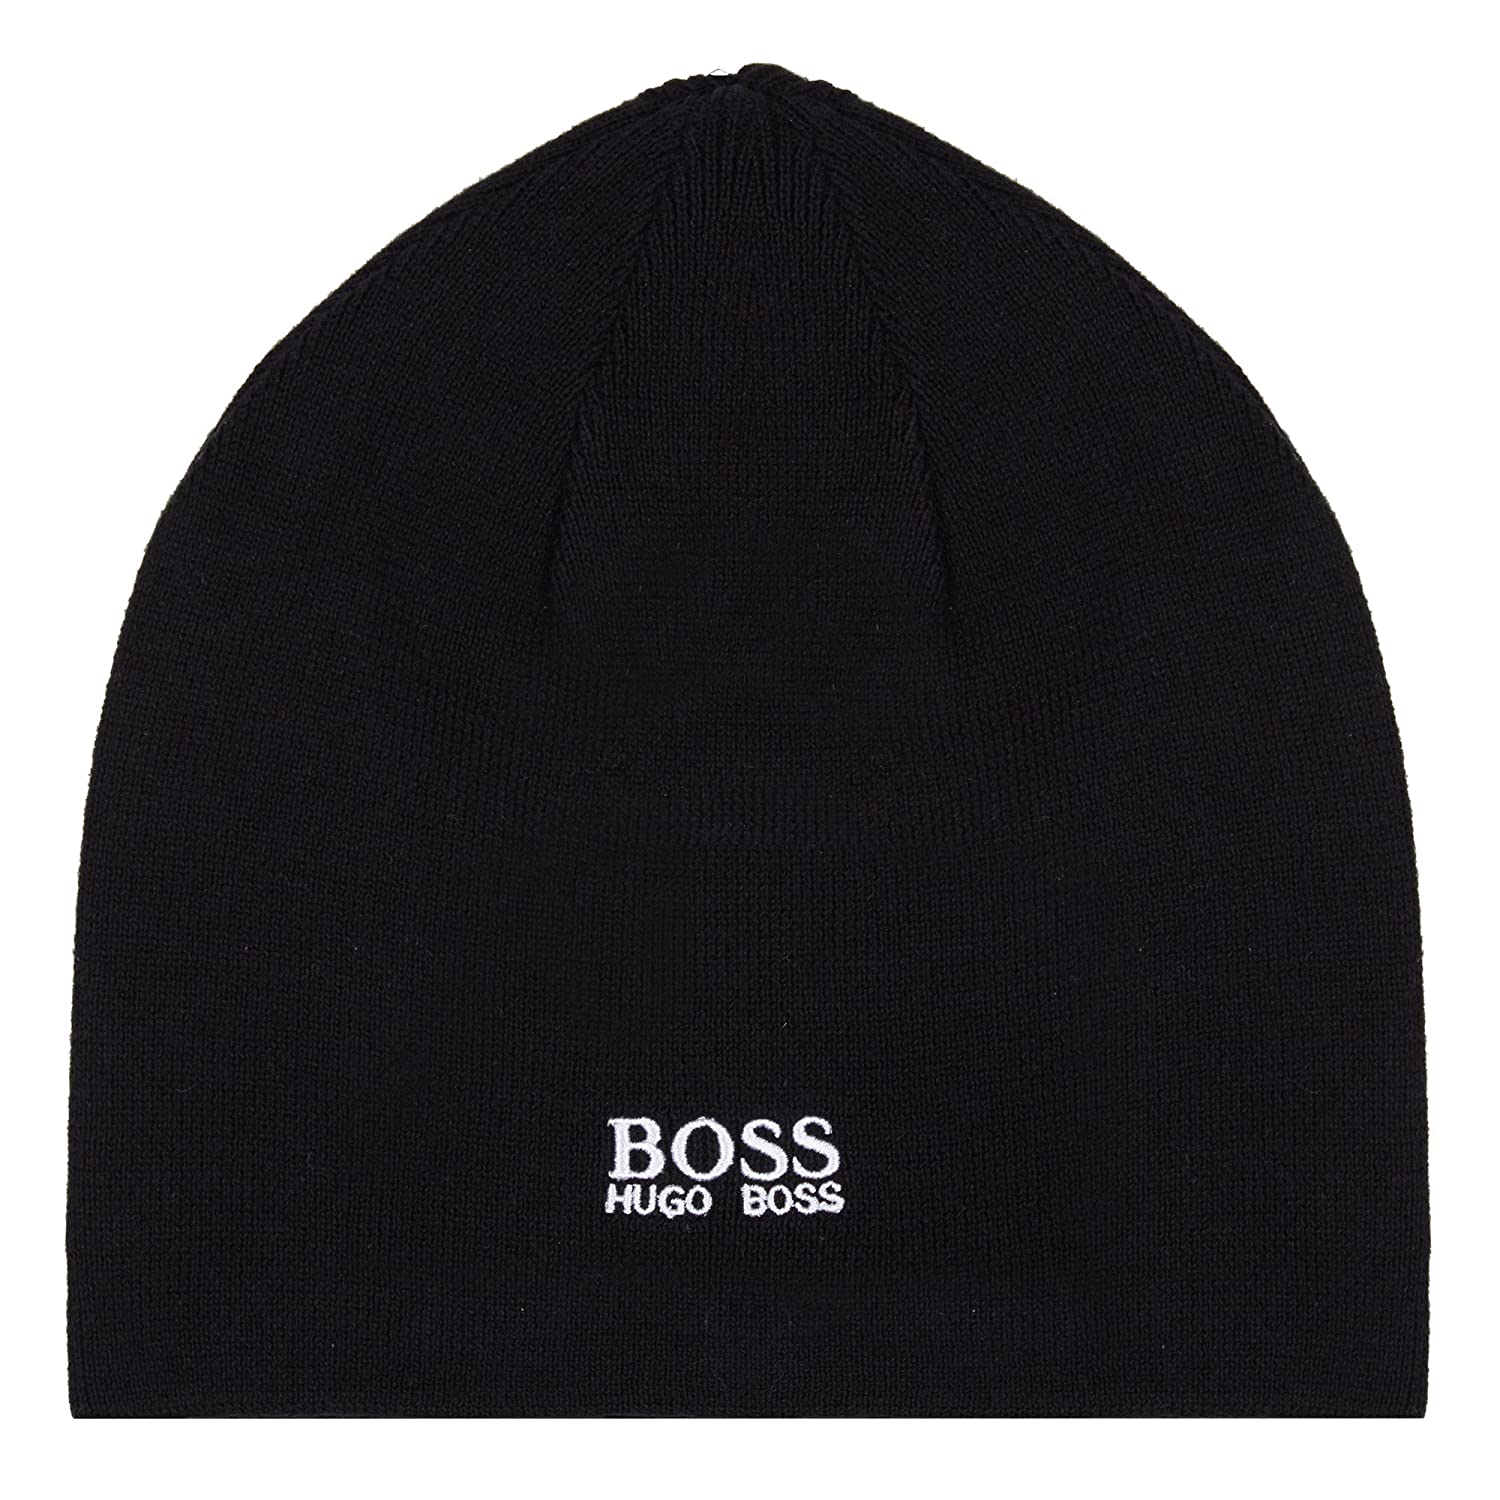 392f9517f66 2017 Mercedes-AMG F1 Formula 1 BLACK Team Beanie Hat by Hugo Boss Adult One  Size  Amazon.co.uk  Sports   Outdoors